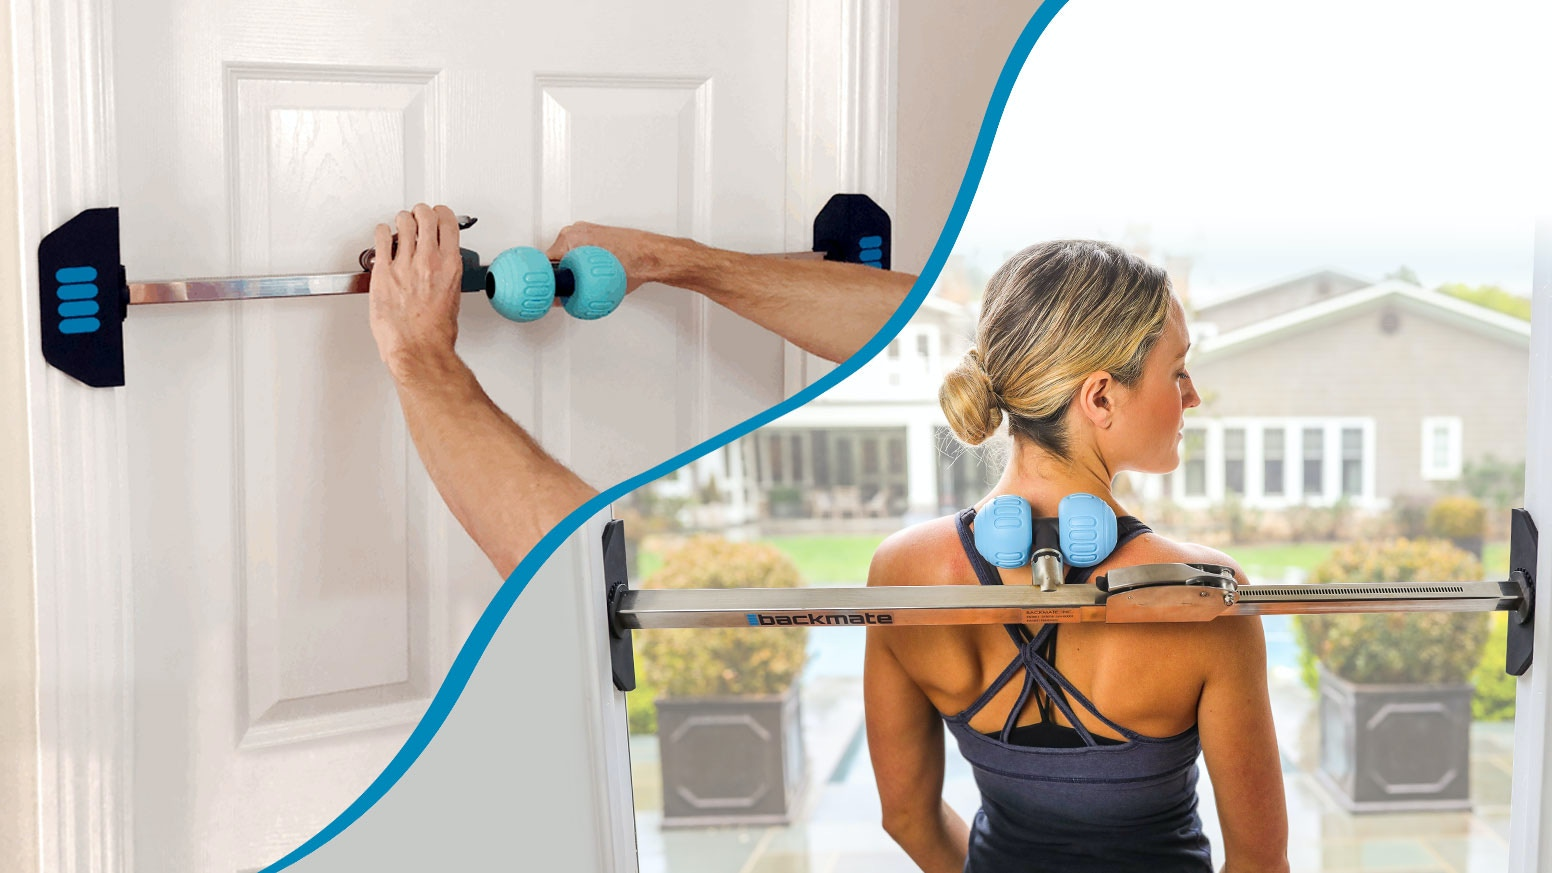 Sets up in any doorway in seconds and provides fast relief from back and neck pain, stress & sore muscles